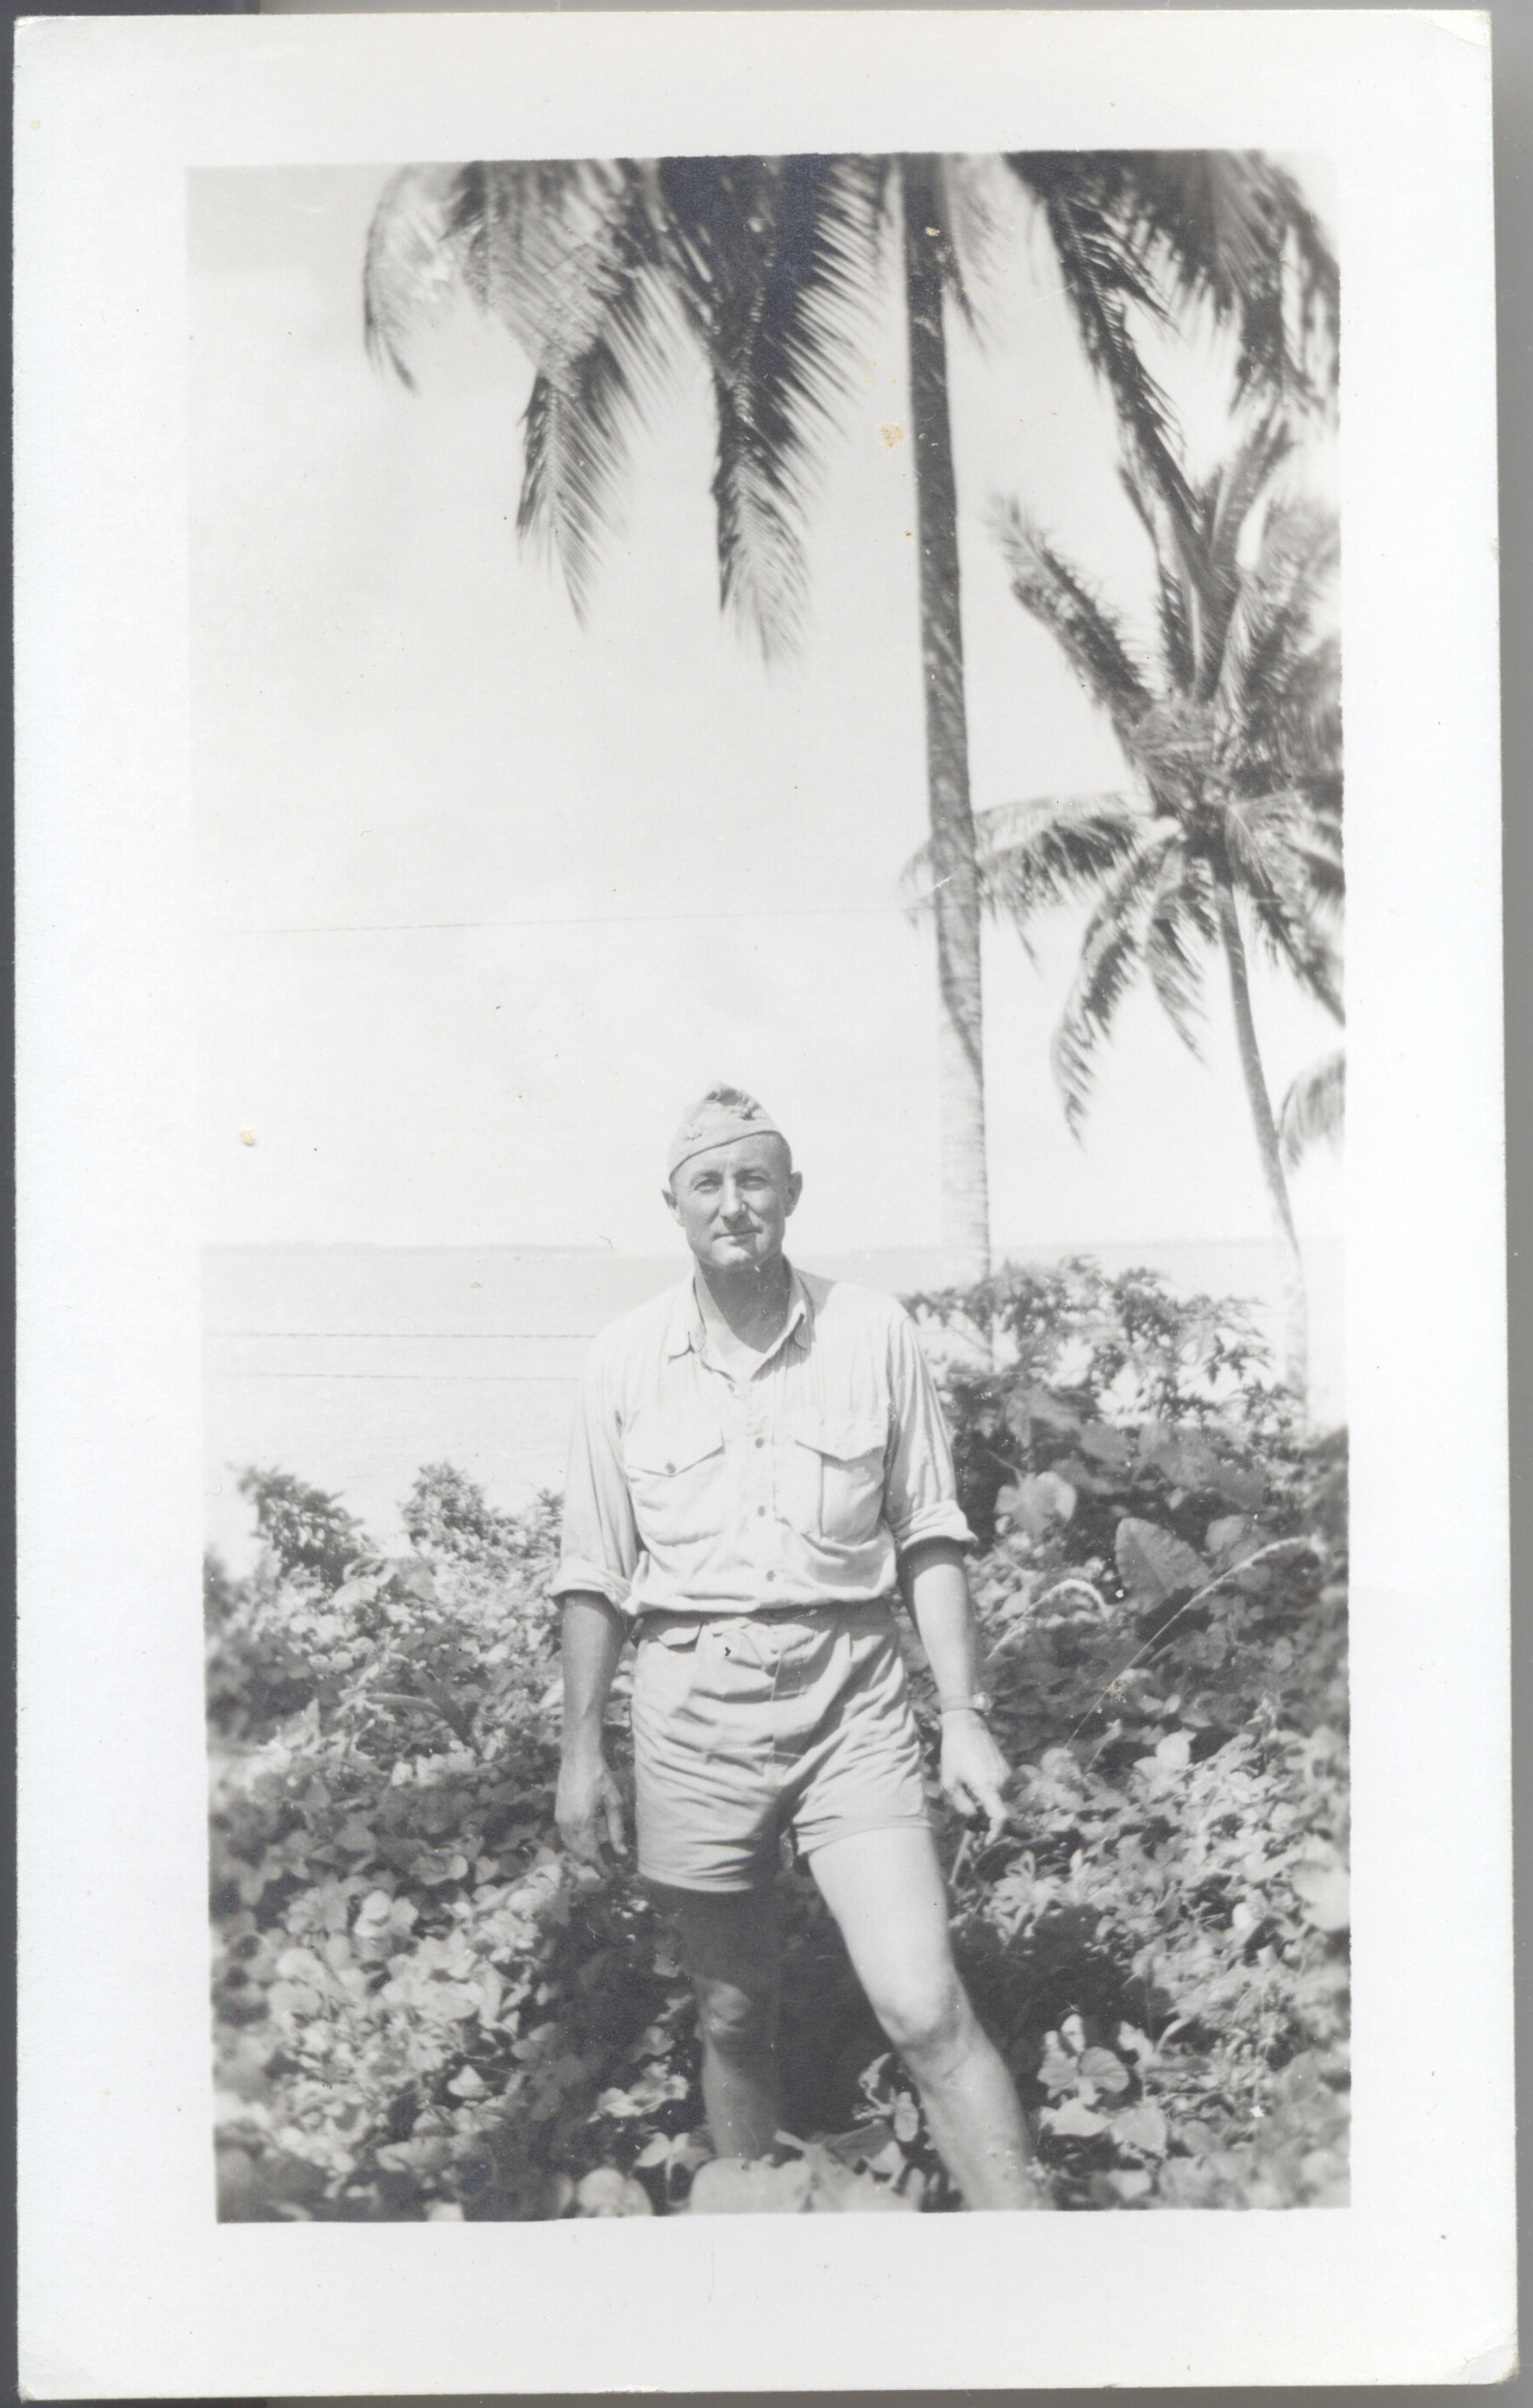 father south pacific 1944.jpg